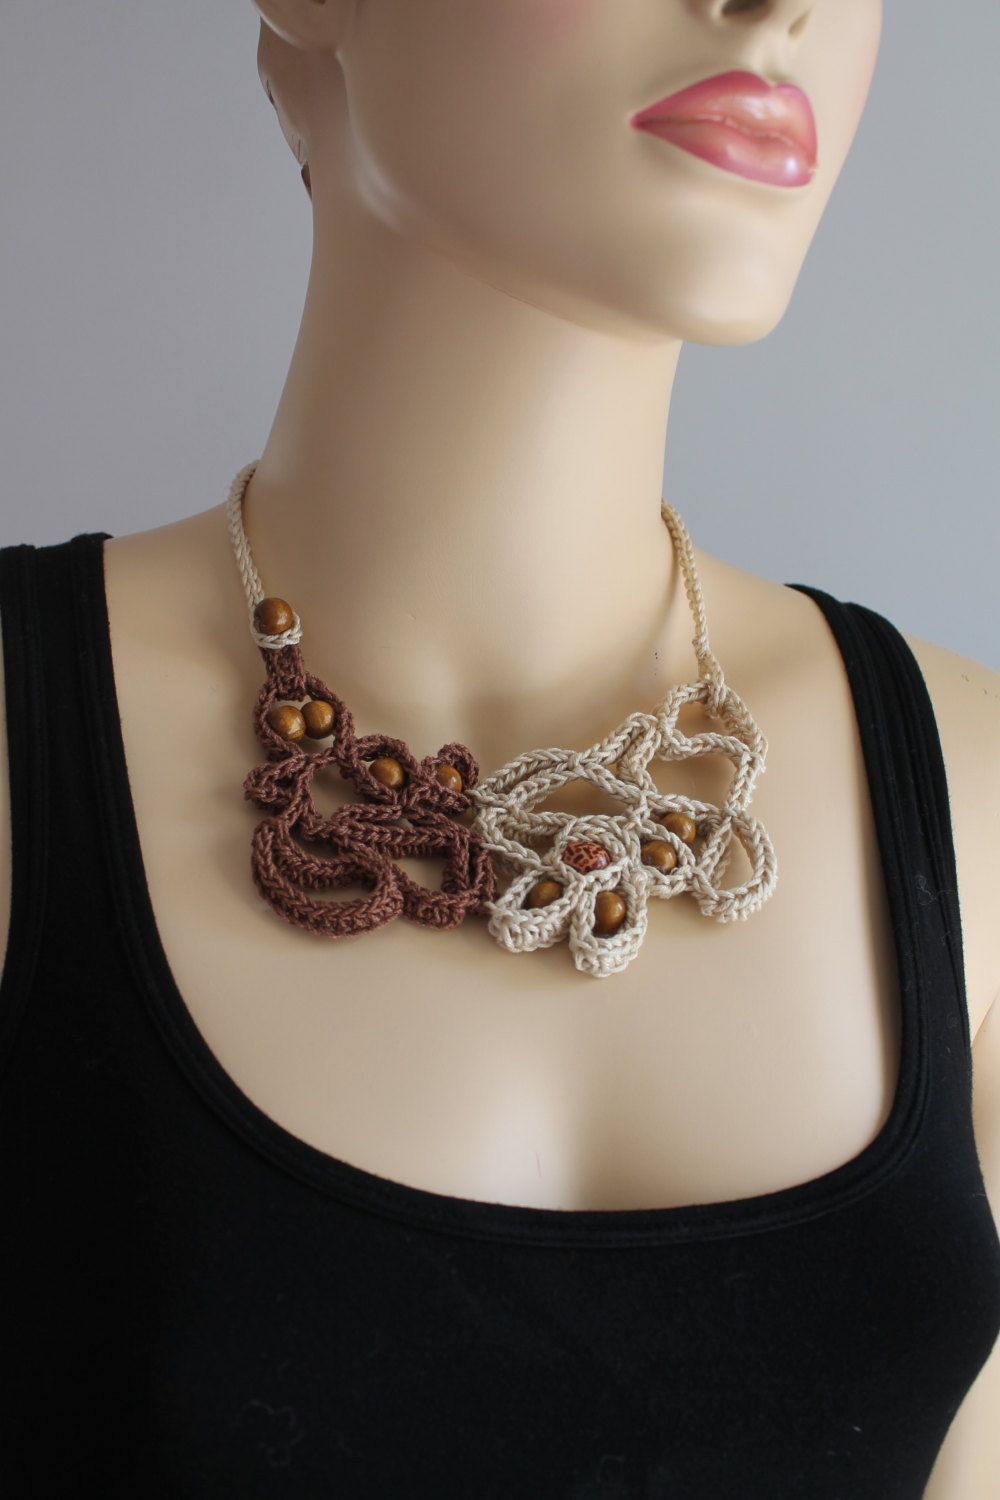 Off White Brown Freeform Crochet Necklace Via Etsy Haken